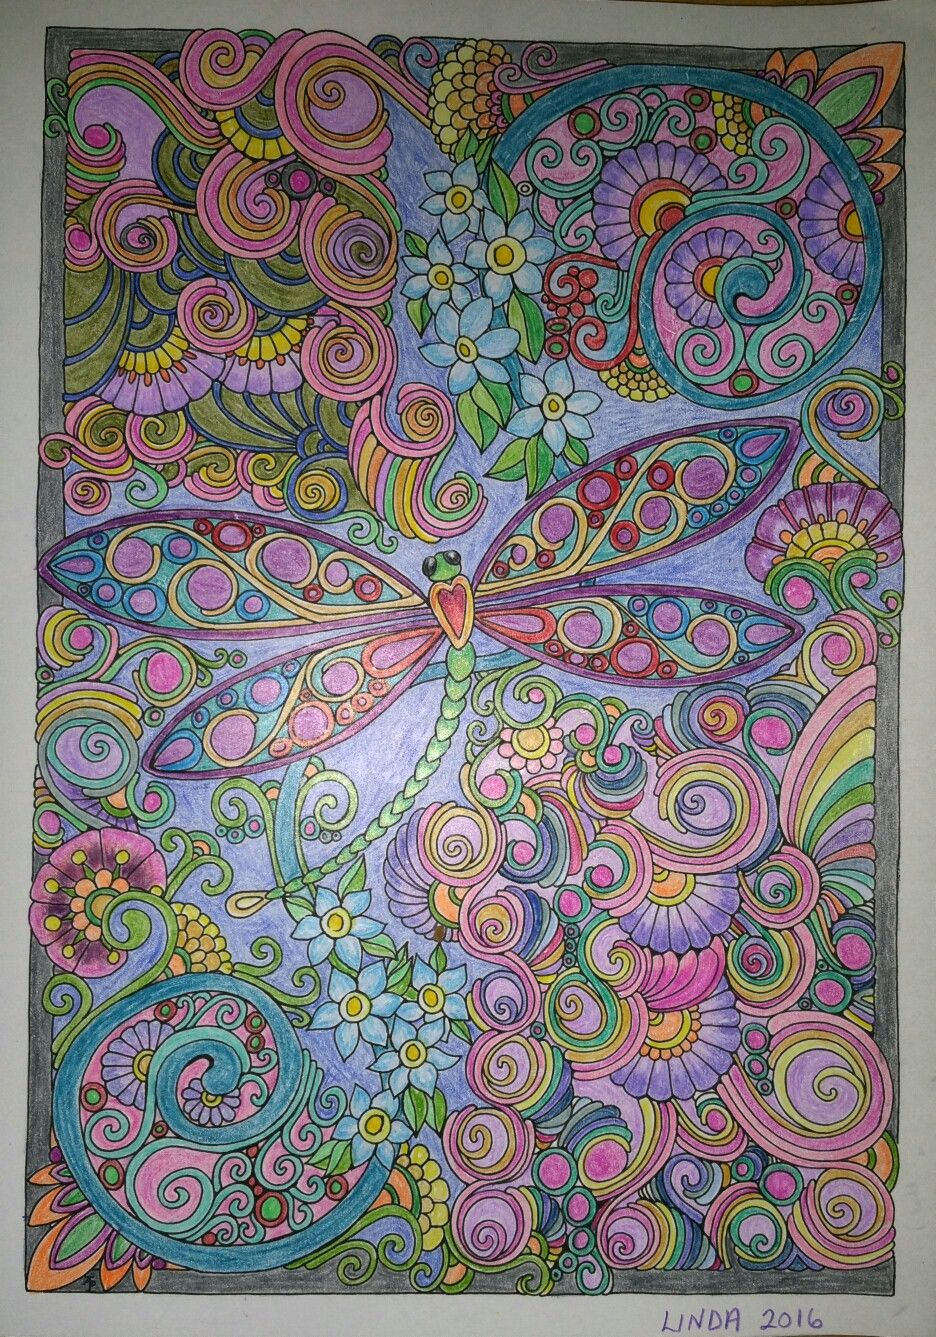 Coloring in dragonflies - Creative Haven Entangled Dragonflies Colored By Linda Koenig